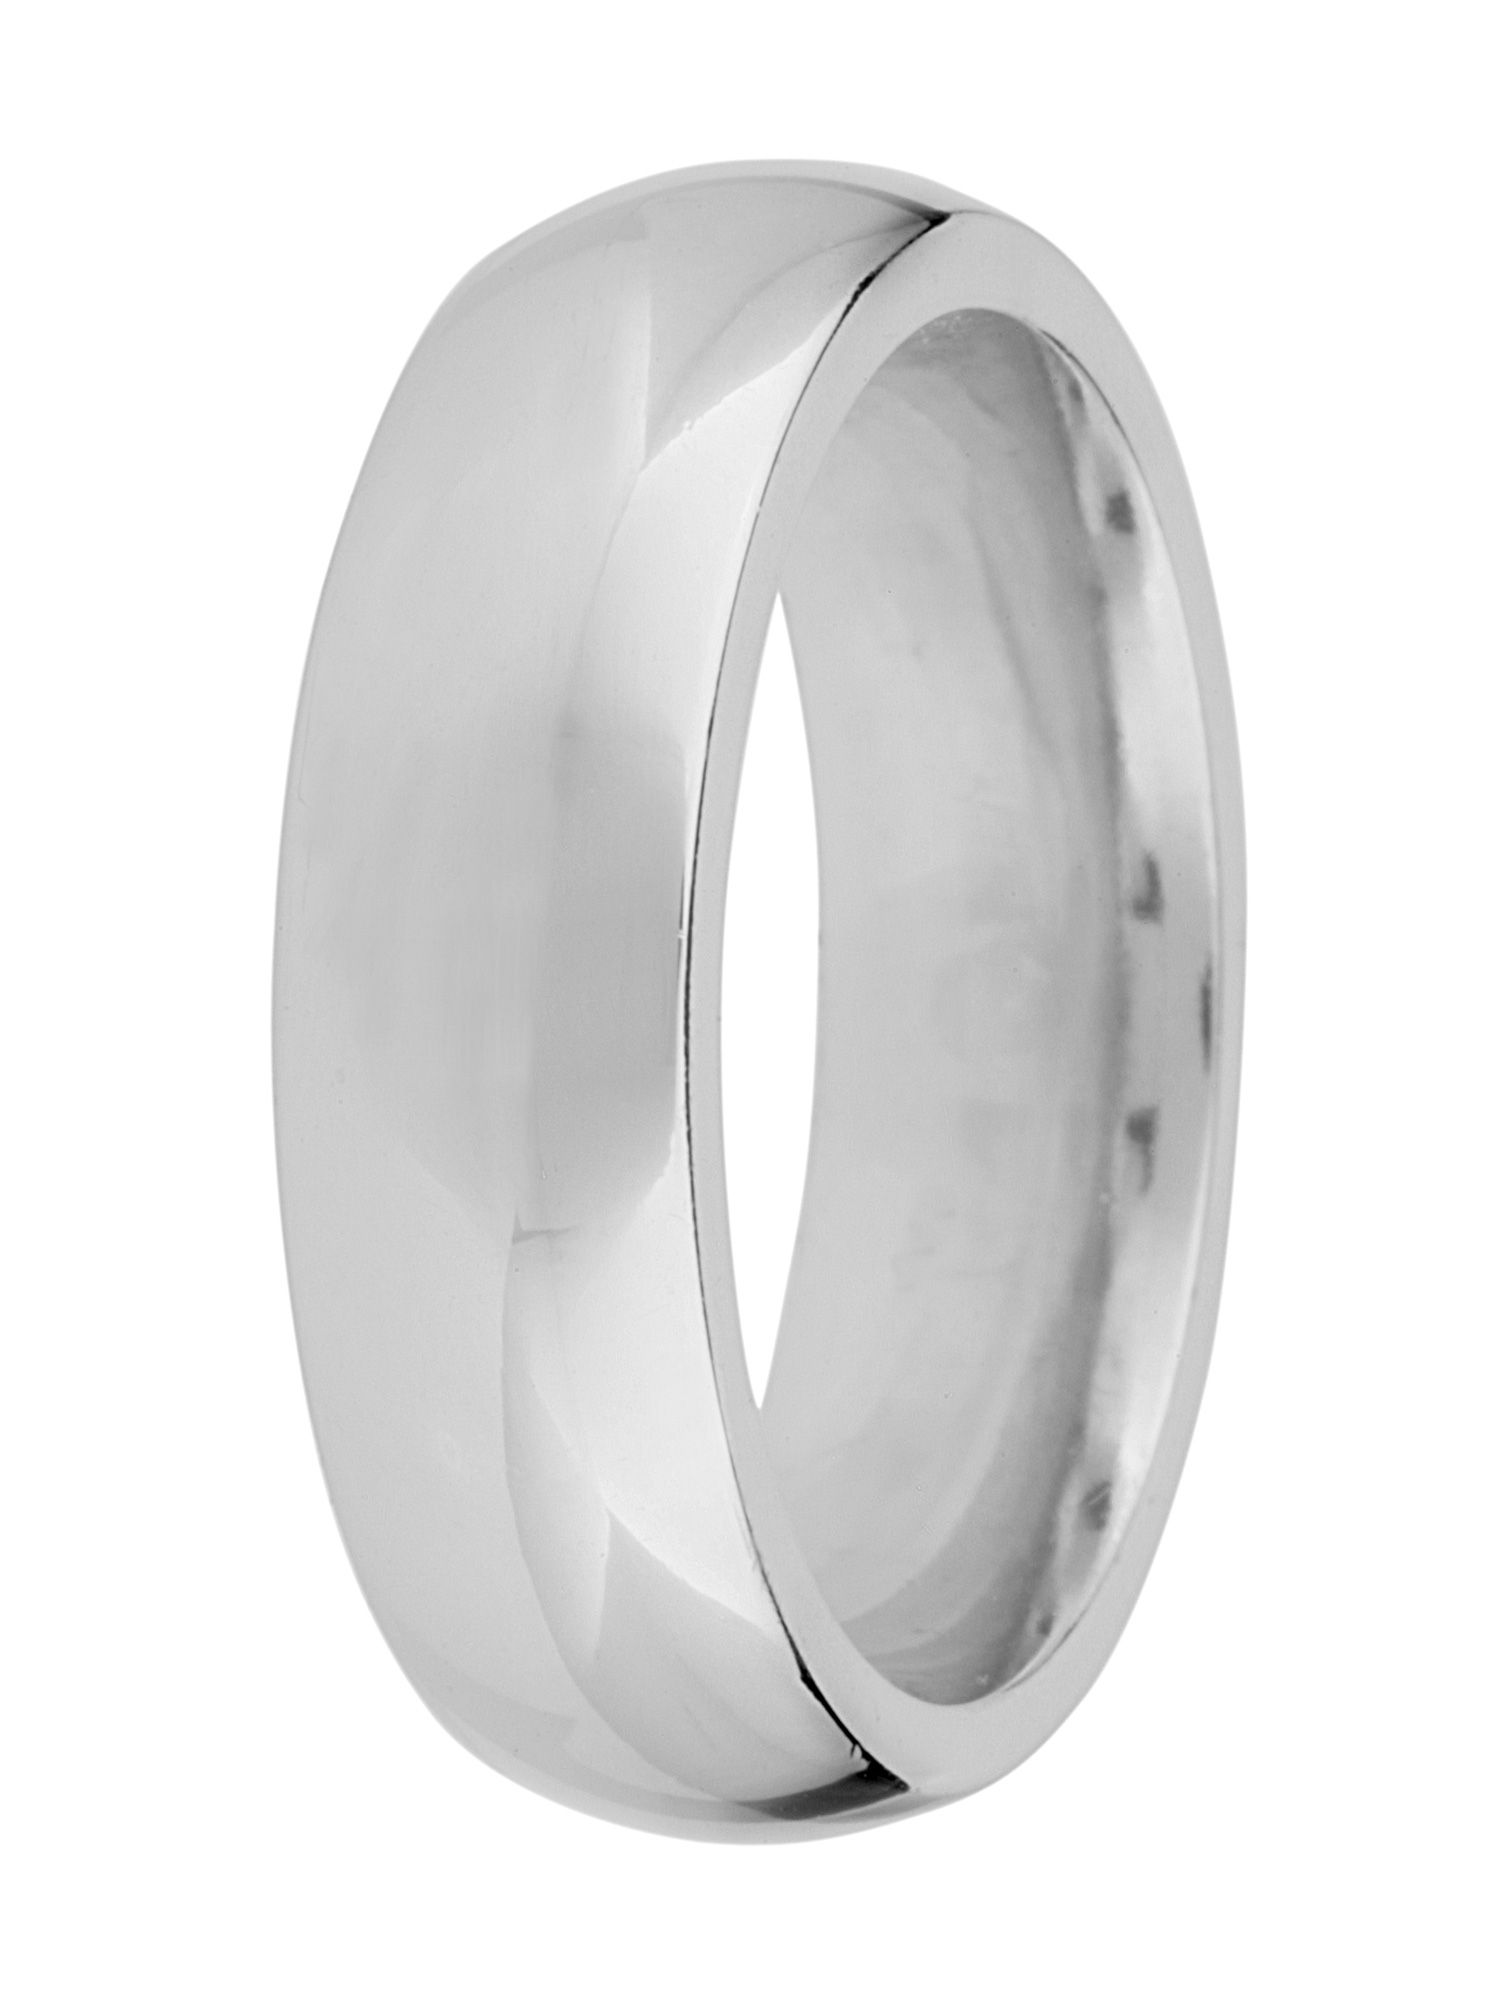 Grooms 18ct gold 6mm court wedding ring - White Gold